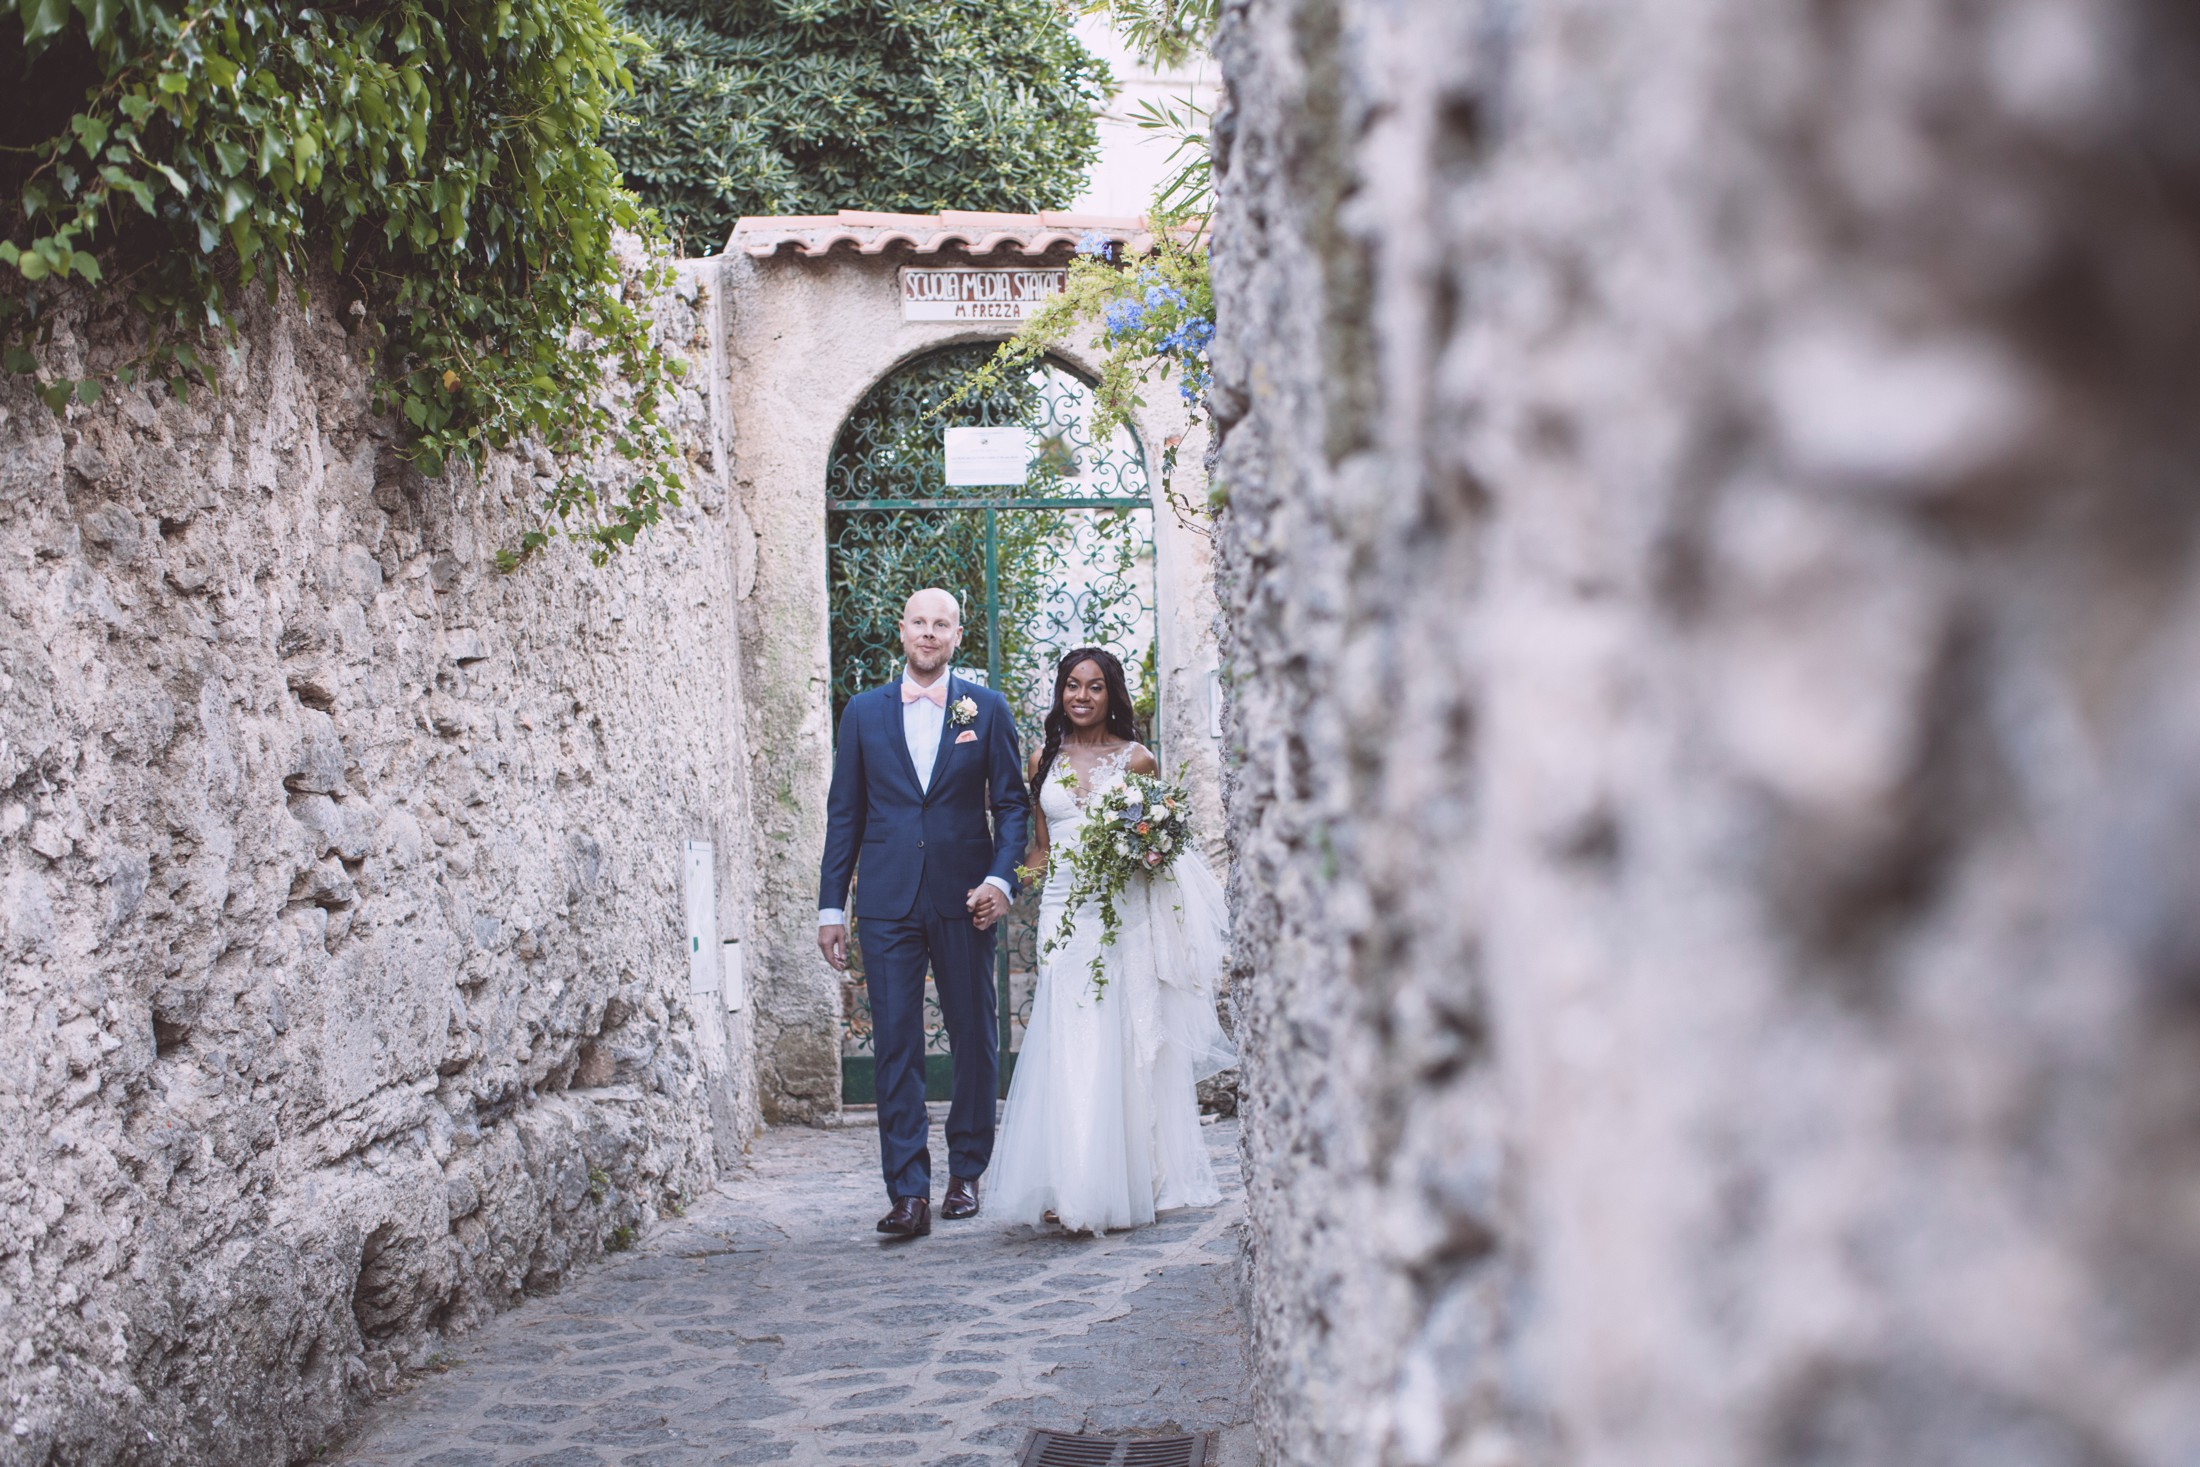 wedding in ravello the bride and the groom walking in a narrow street in ravello